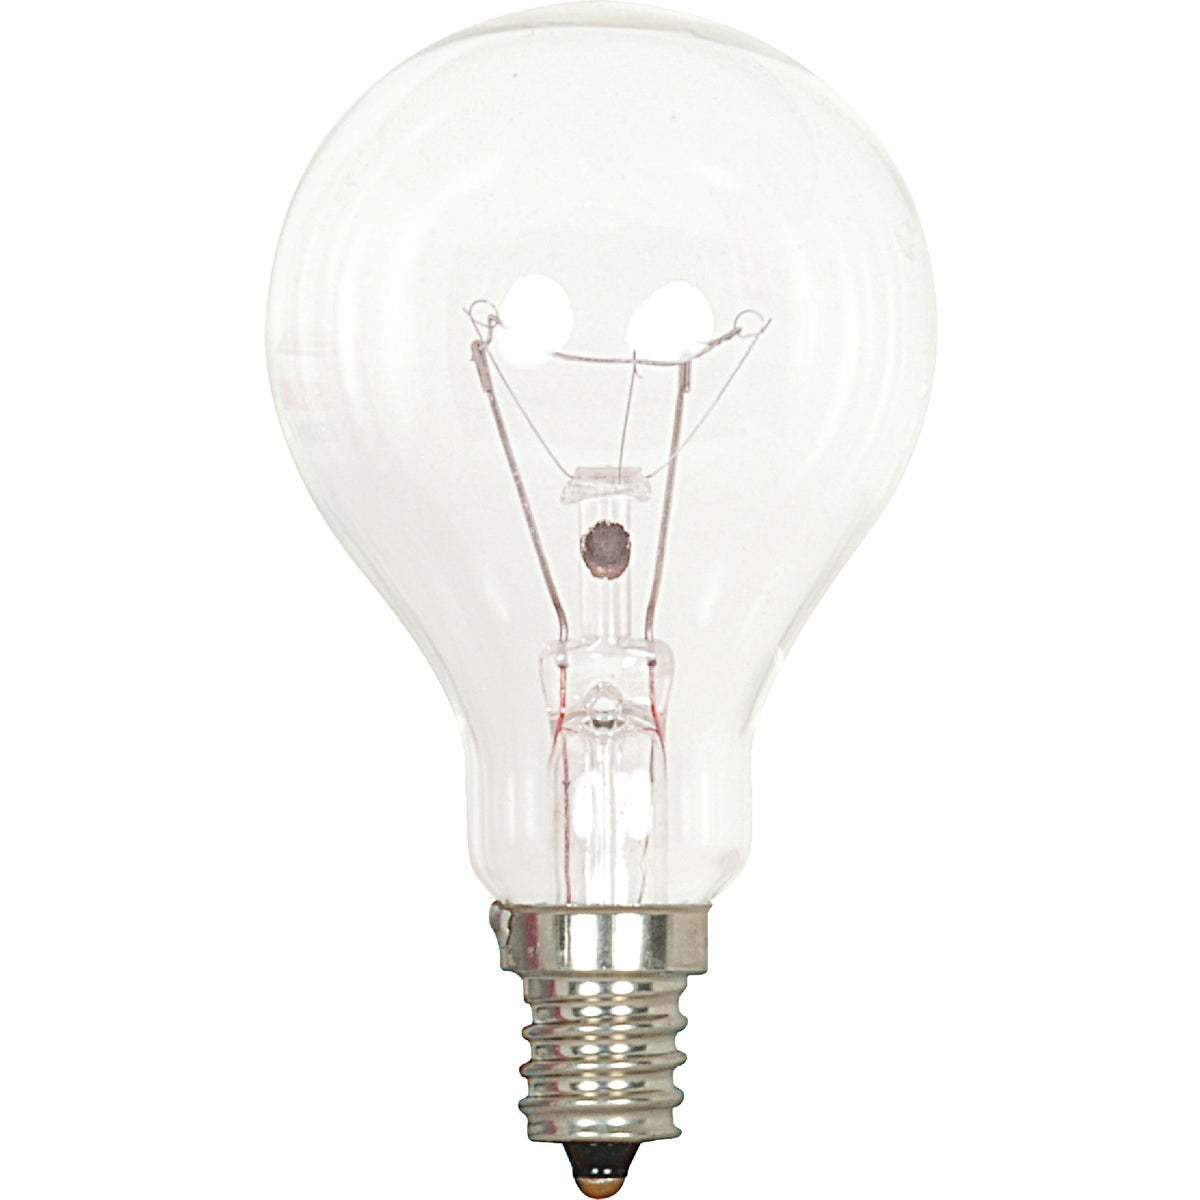 60W CLR CEILING FAN BULB